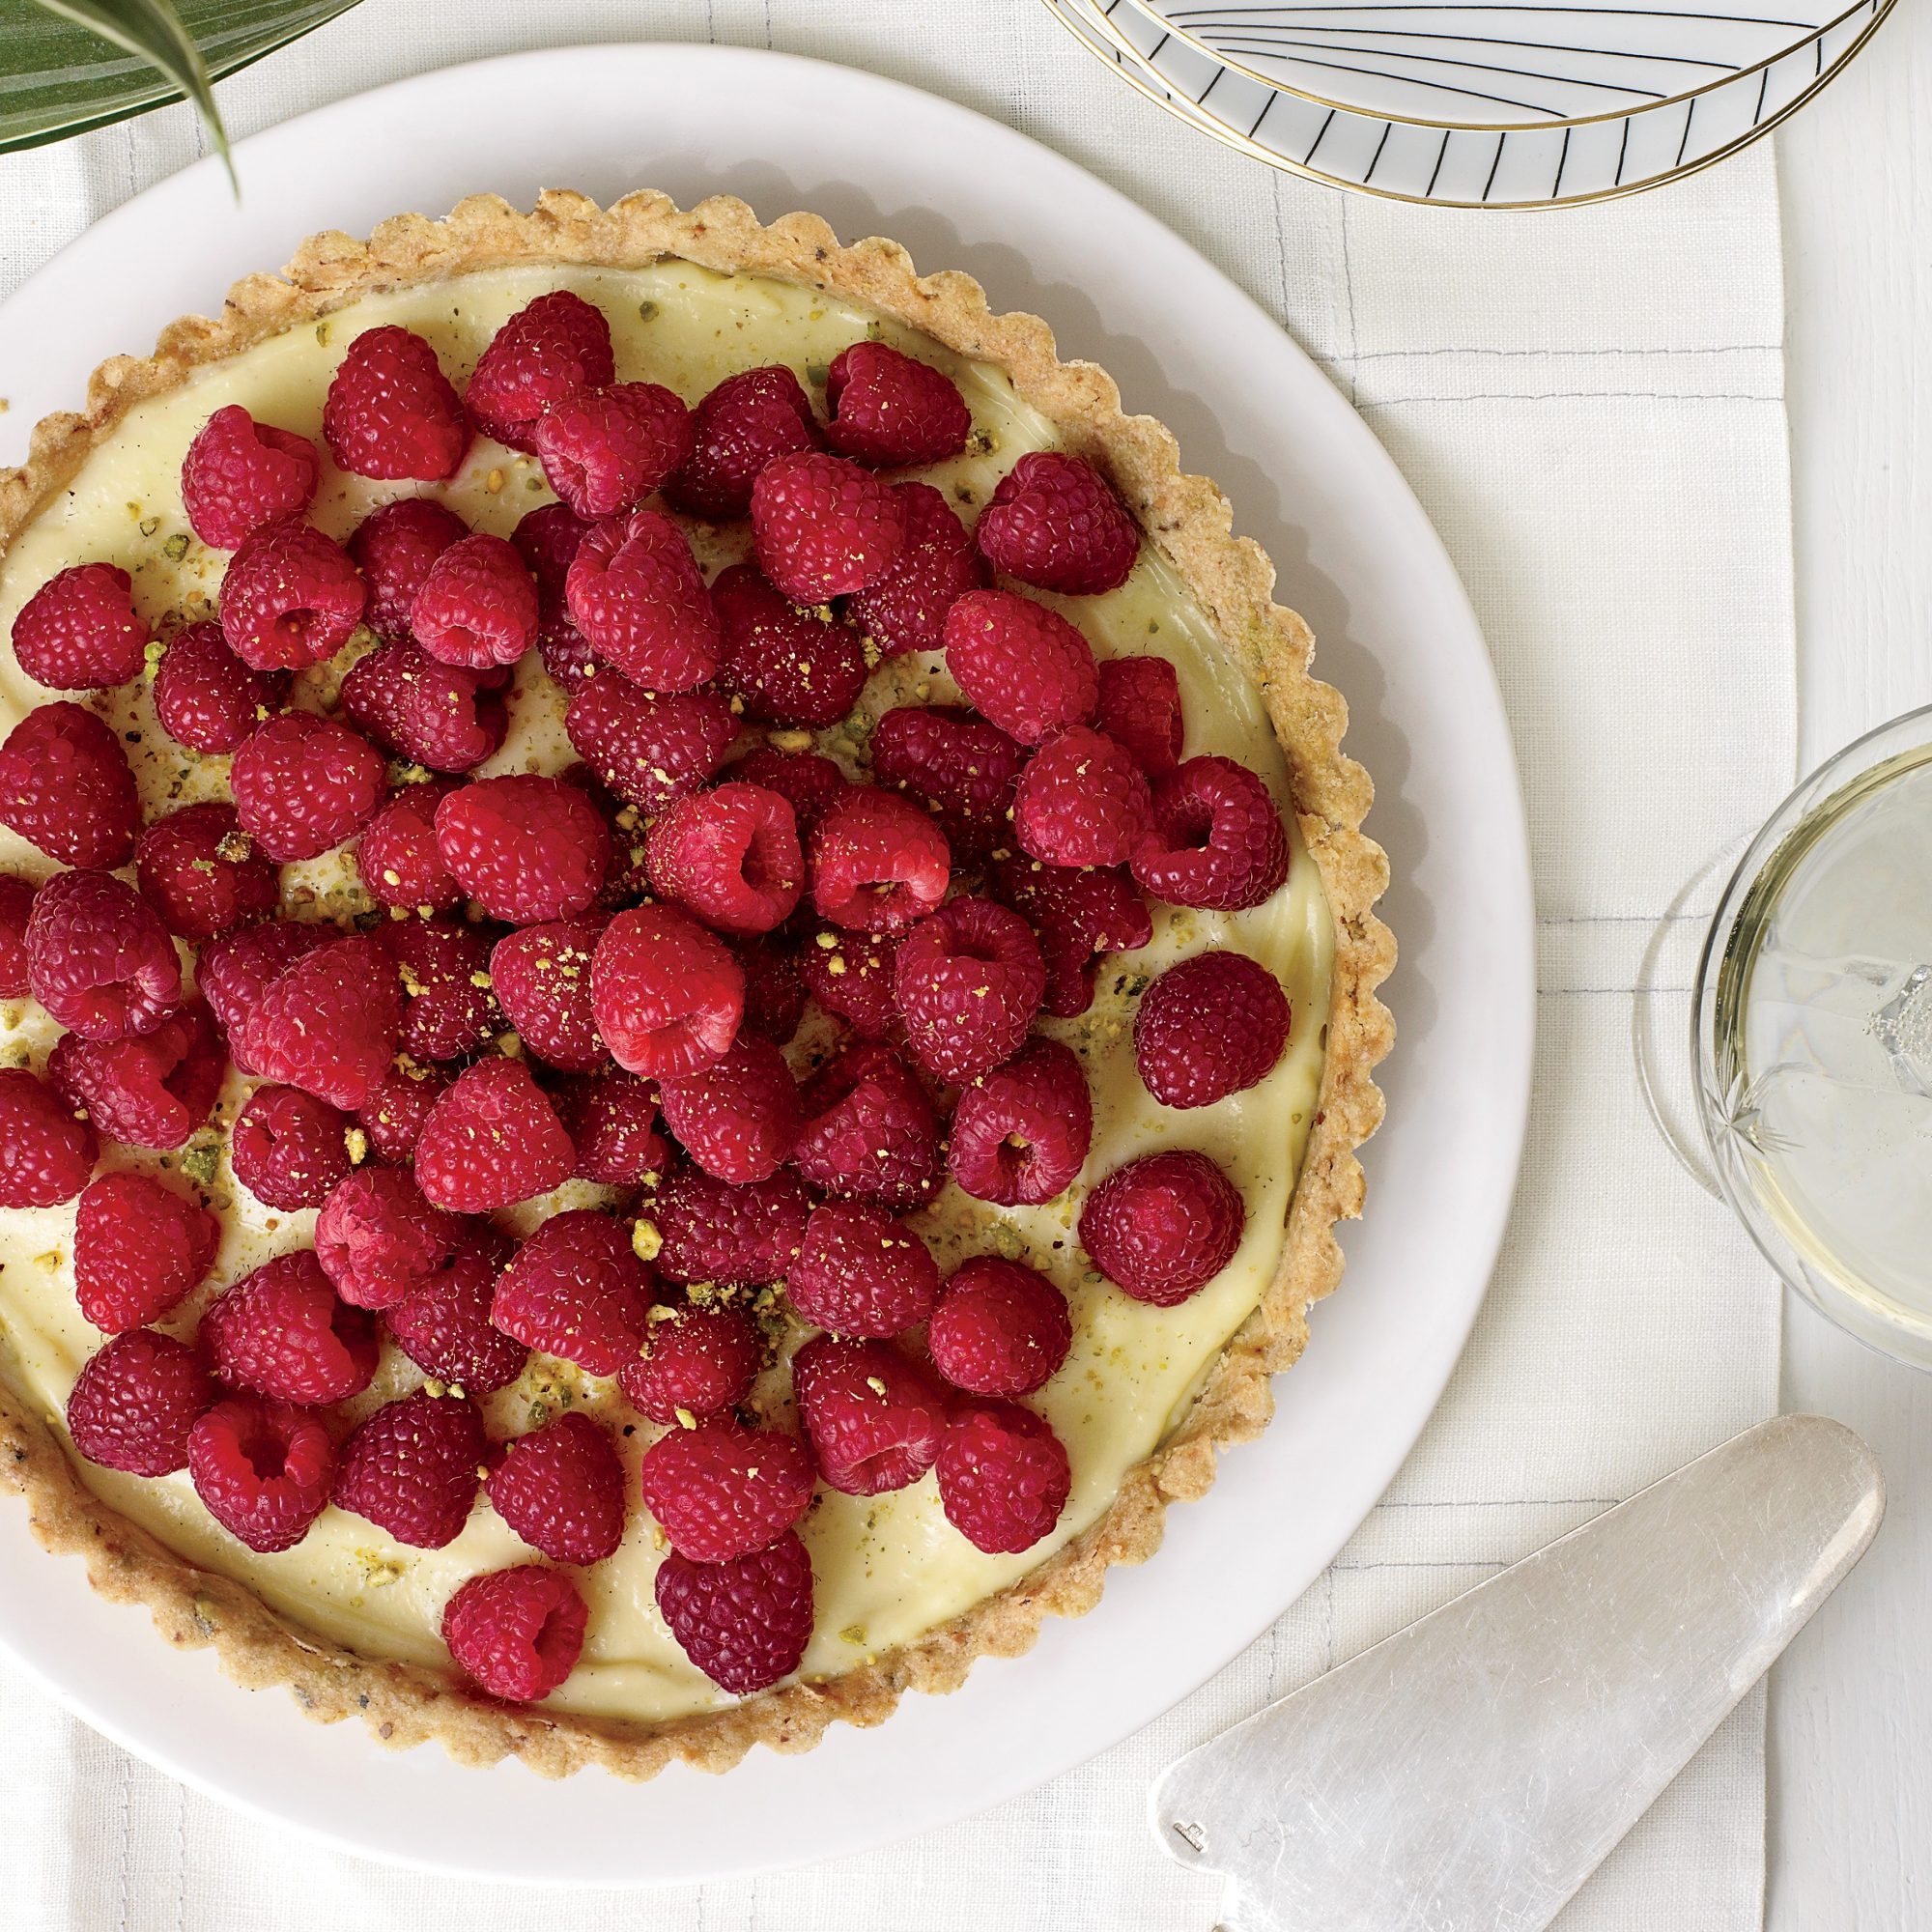 Easter Dessert Recipes: Fruit Pies and Tarts